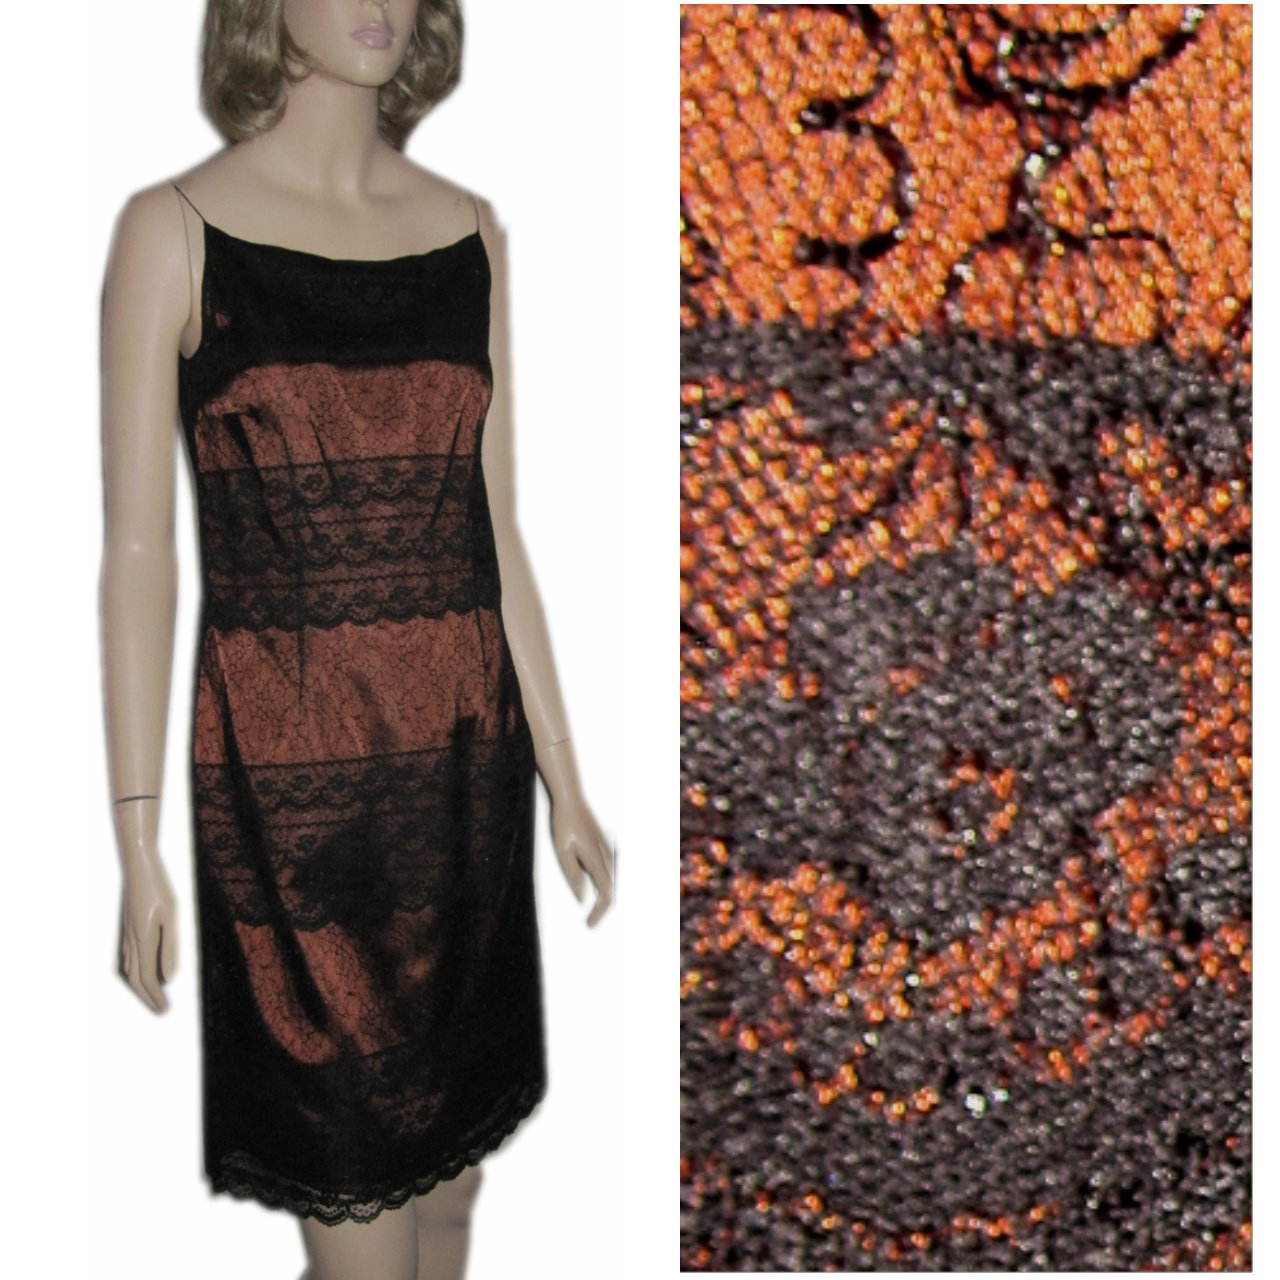 sz 6 CHANTILLY LACE over BRONZE SATIN Cocktail Dress by After Five $29.99 - List Price $268